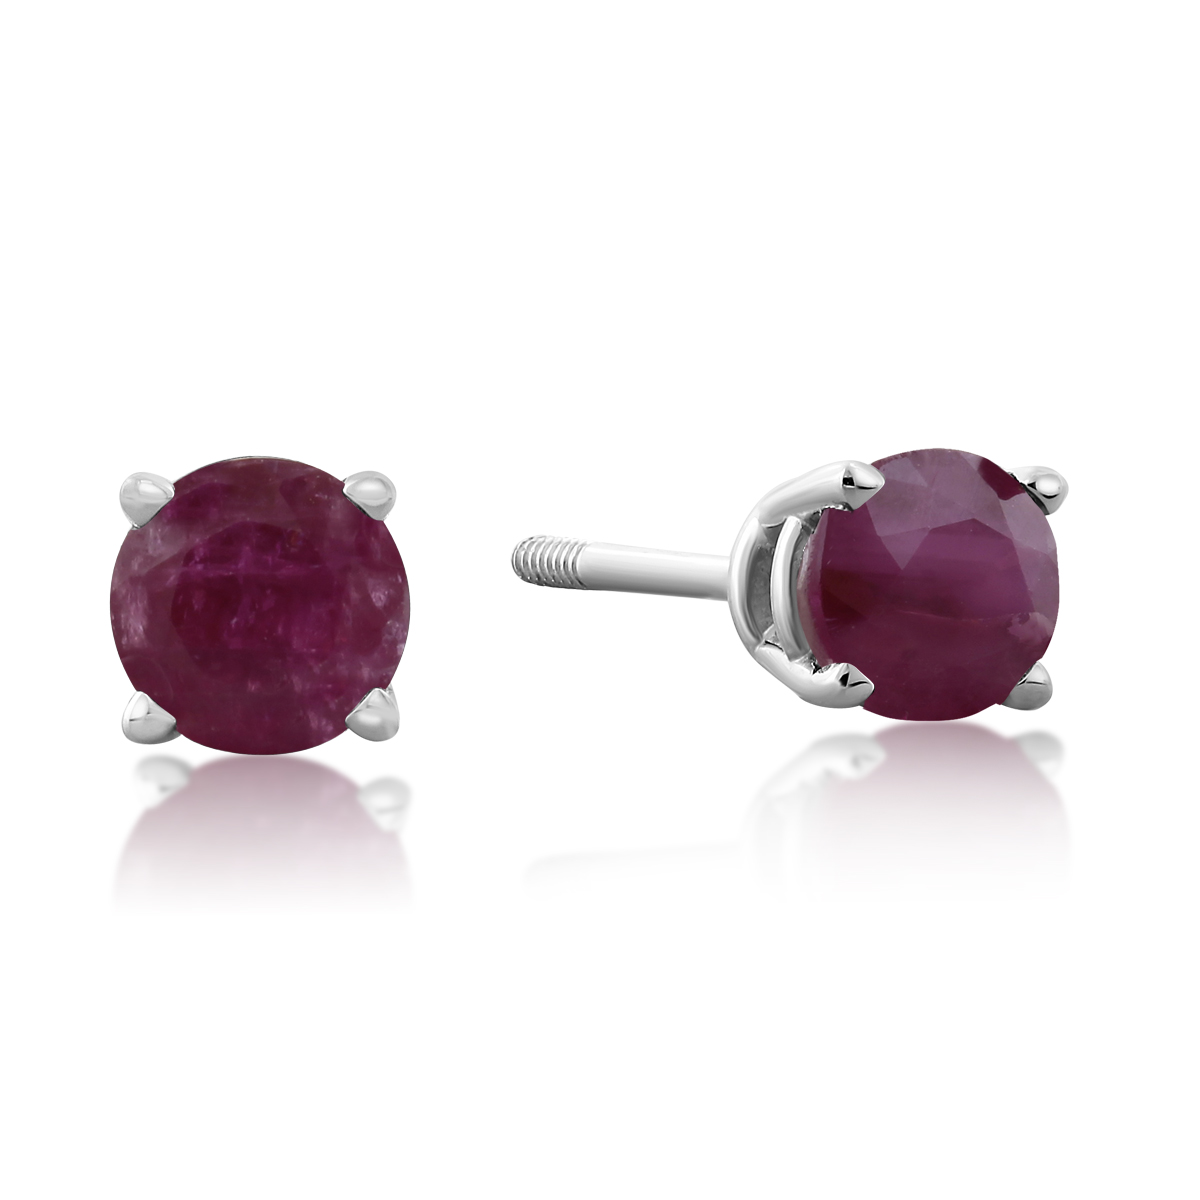 Garnet Stud Earrings in 14K Gold